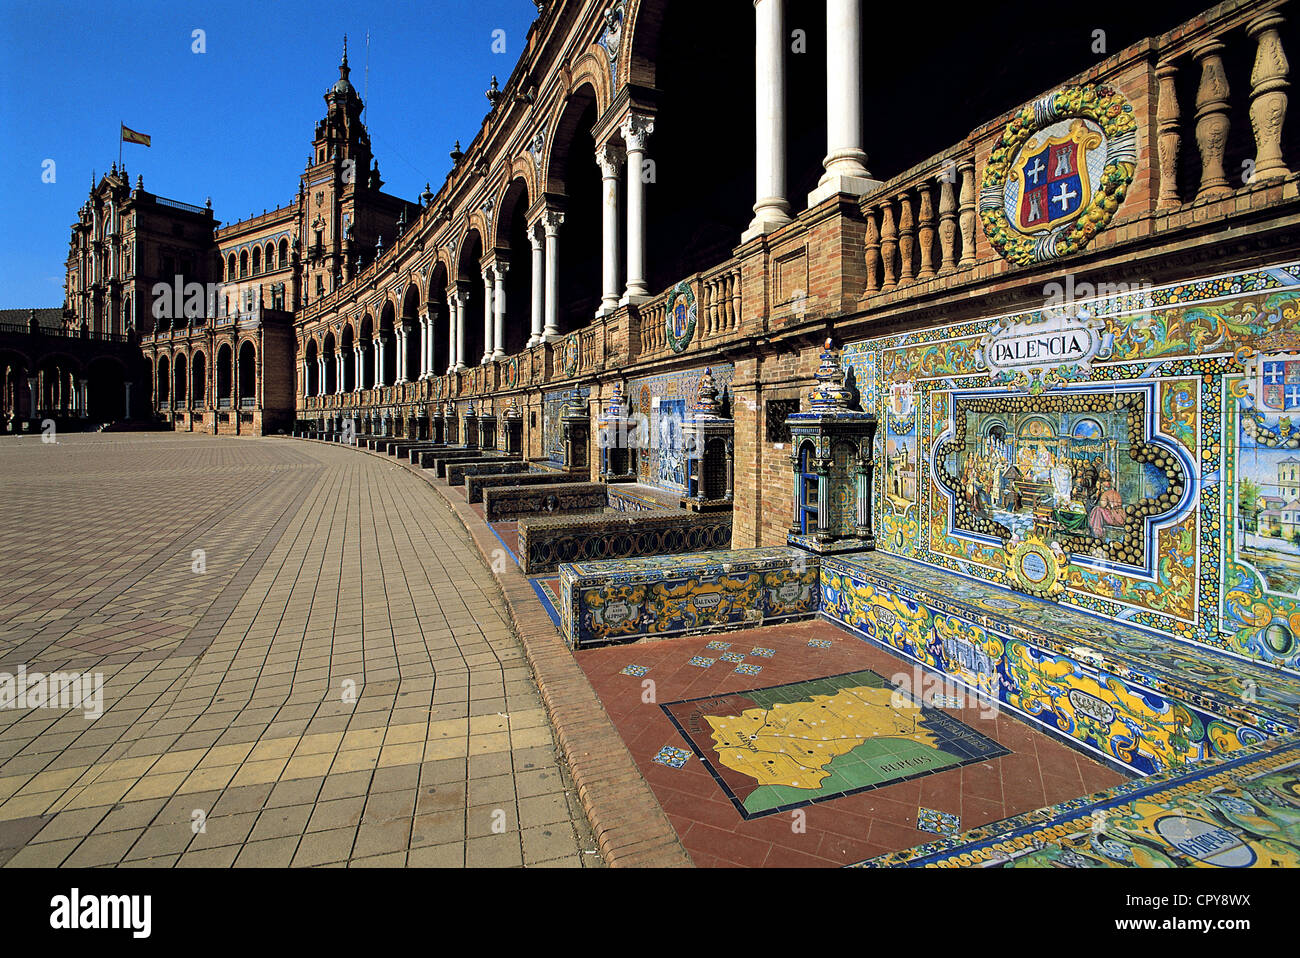 Spain, Andalucia, Sevilla, Plaza de Espana, designed by Aníbal González, built in 1929 to host Spanish - Stock Image